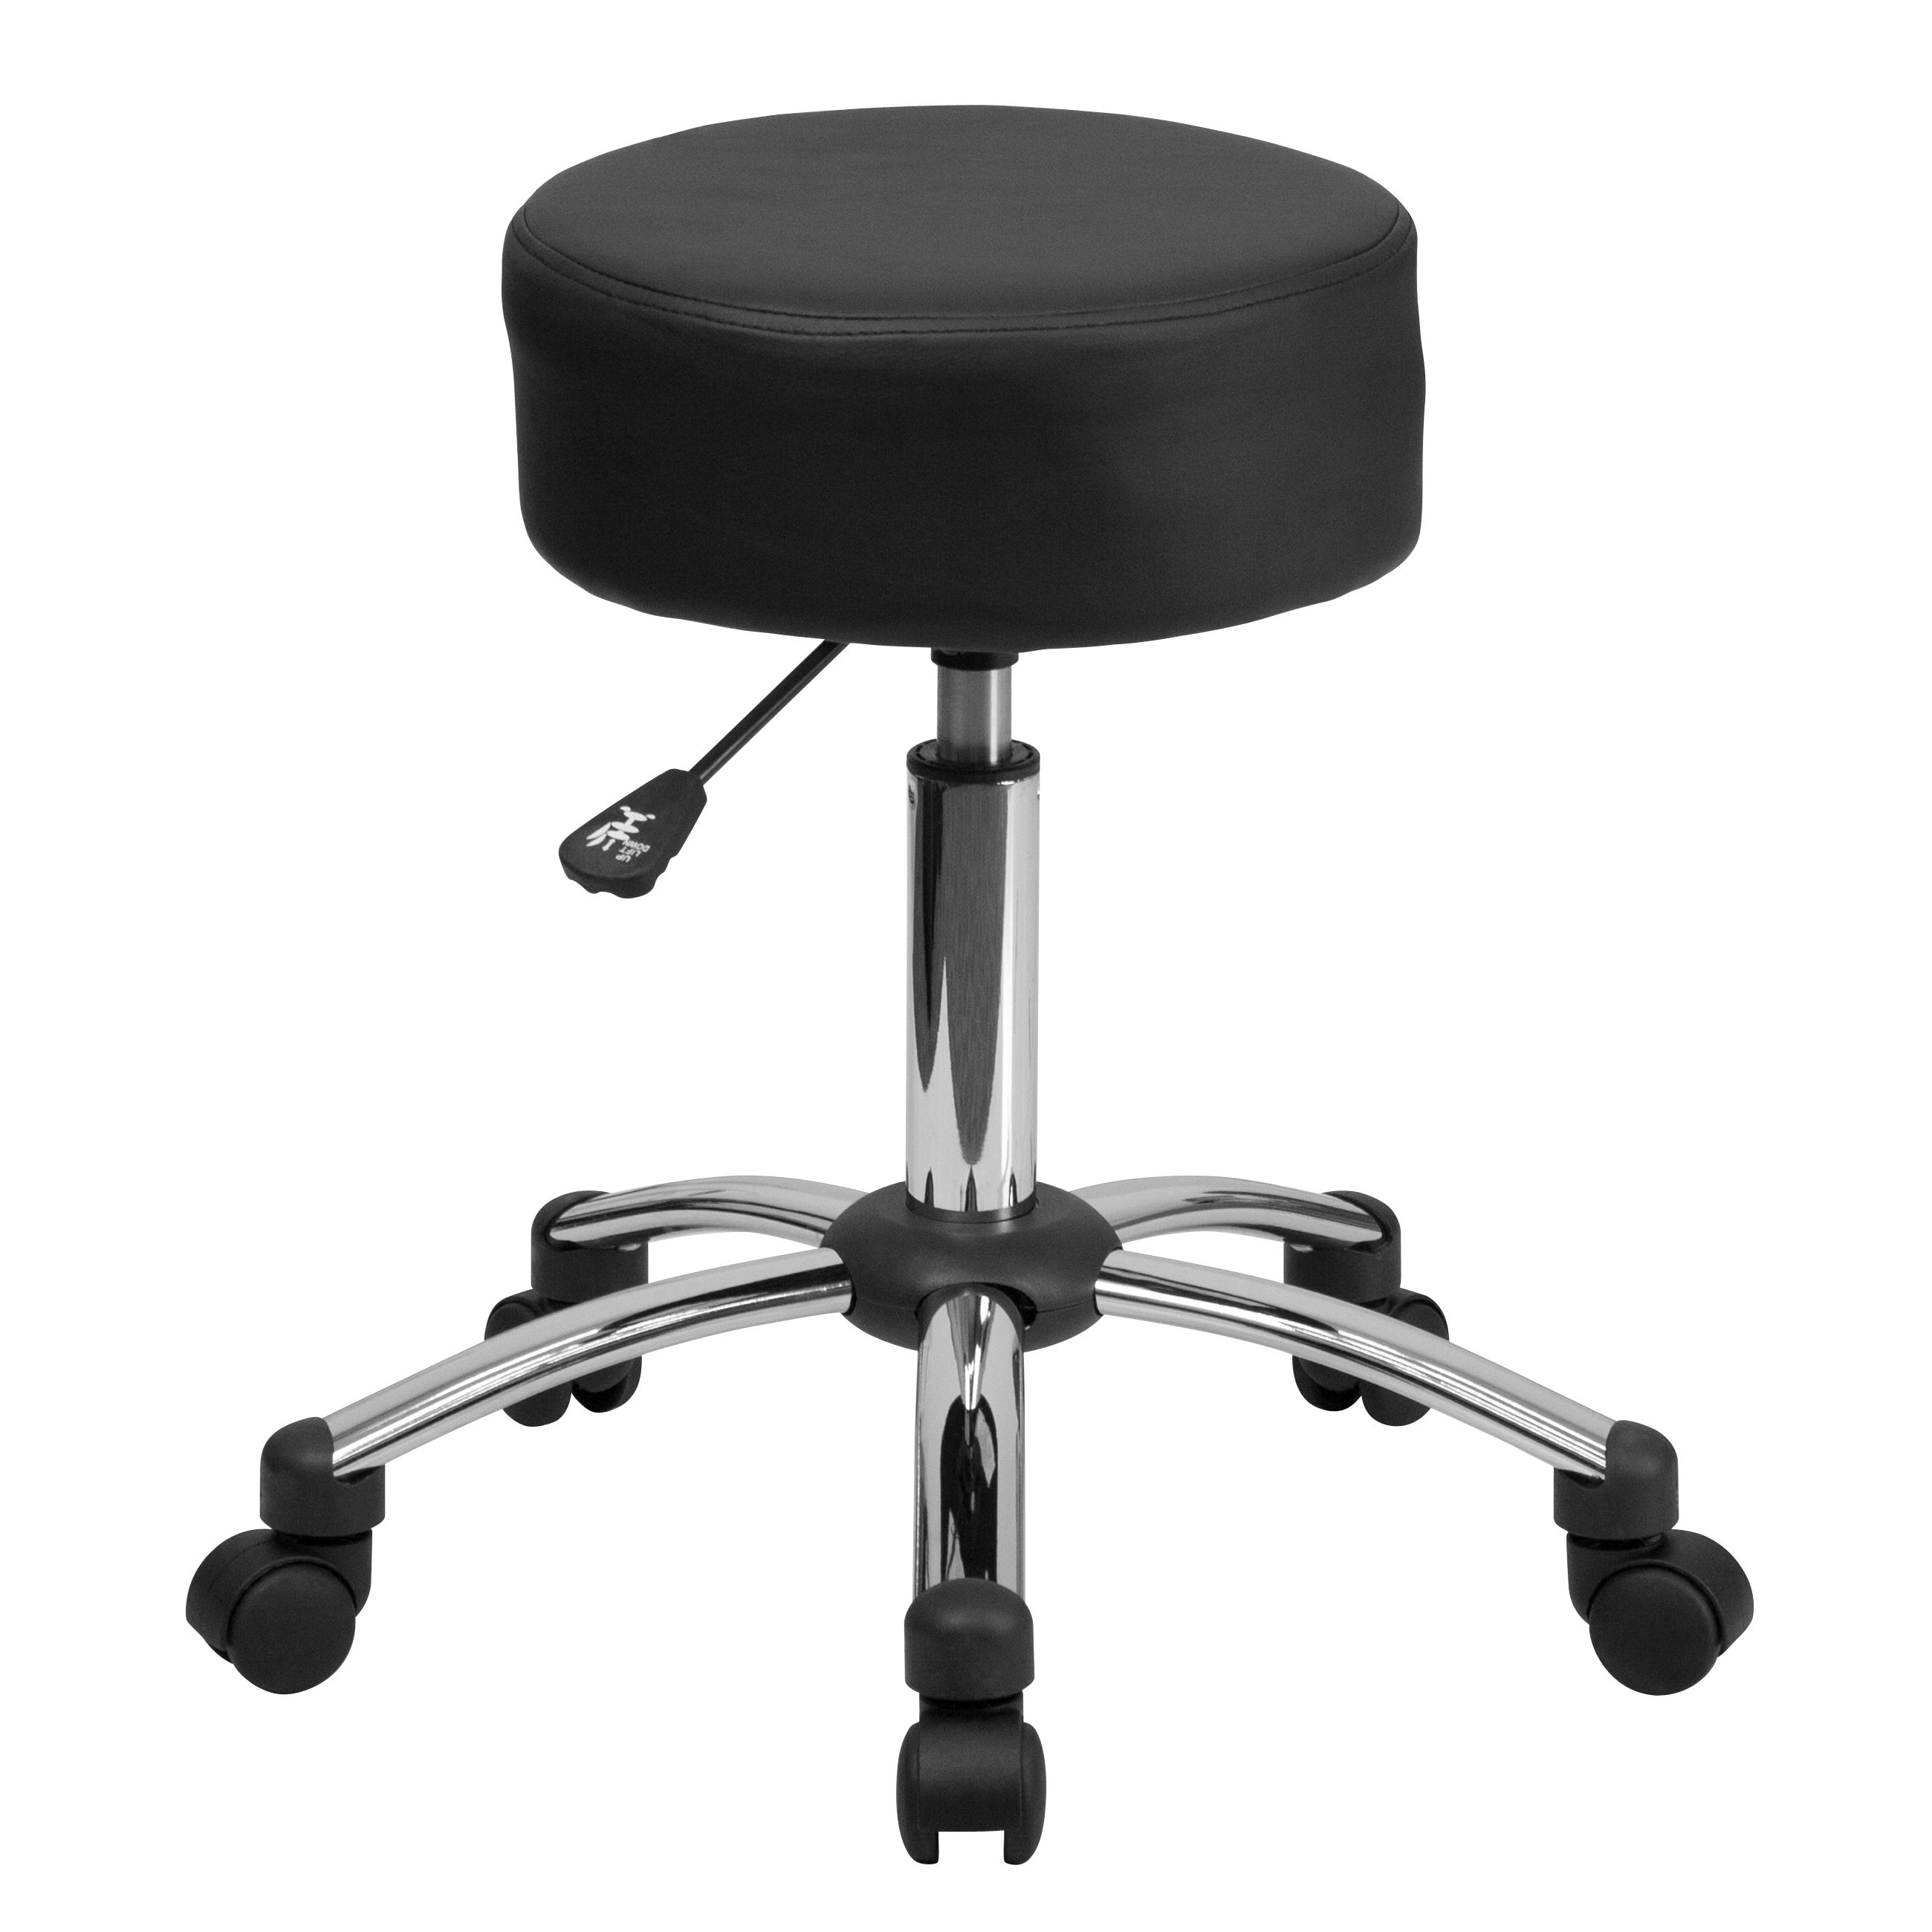 Backless ergonomic chair - Flash Furniture Backless Stool Thick Padded Seat